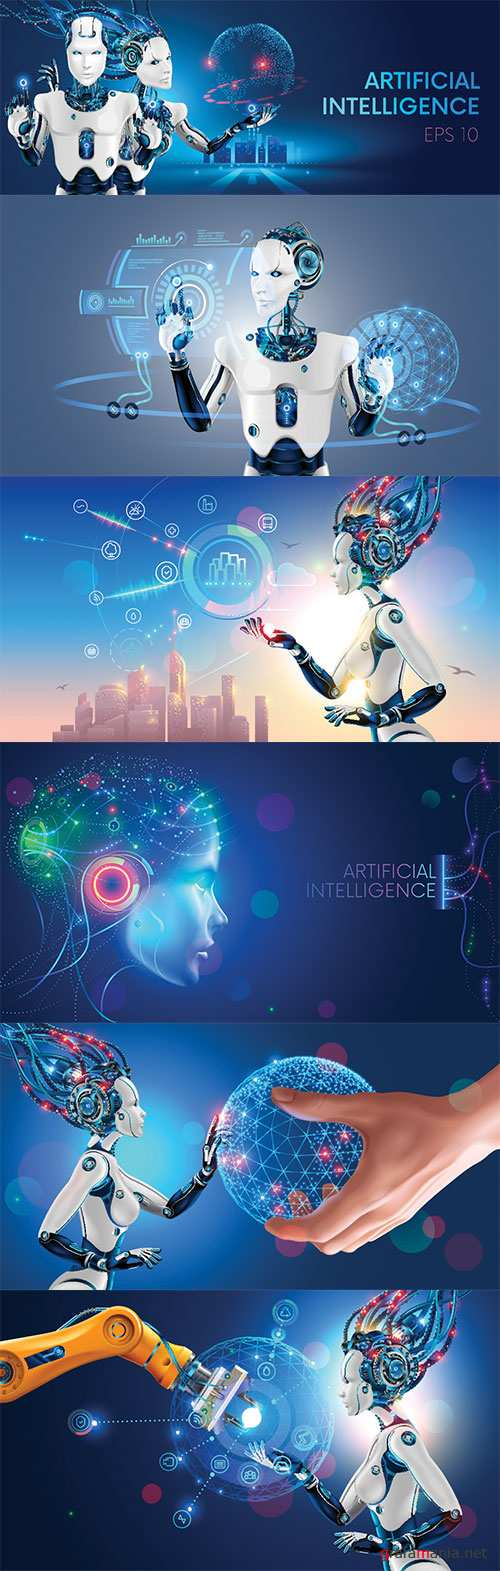 Robots man and woman with artificial intelligence working with virtual interface in cybernetic reality, 3d vector illustration